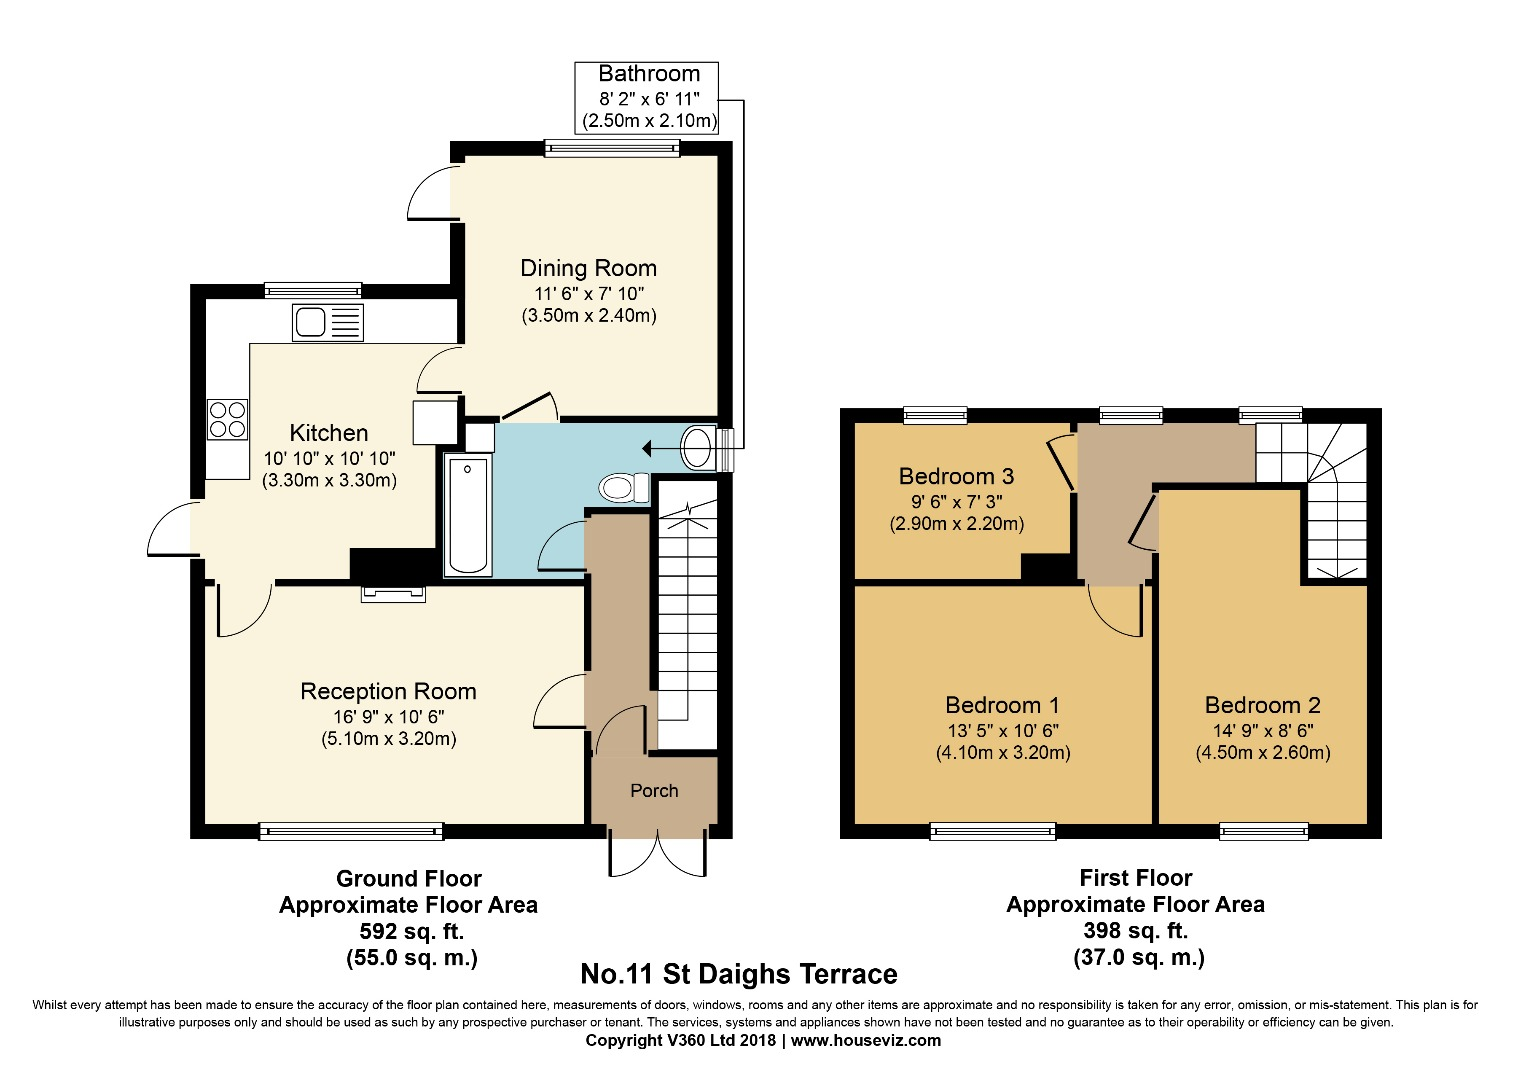 3 bed for sale on No.11 St. Daighs Terrace, Inniskeen, Co. Monaghan - Property Floorplan